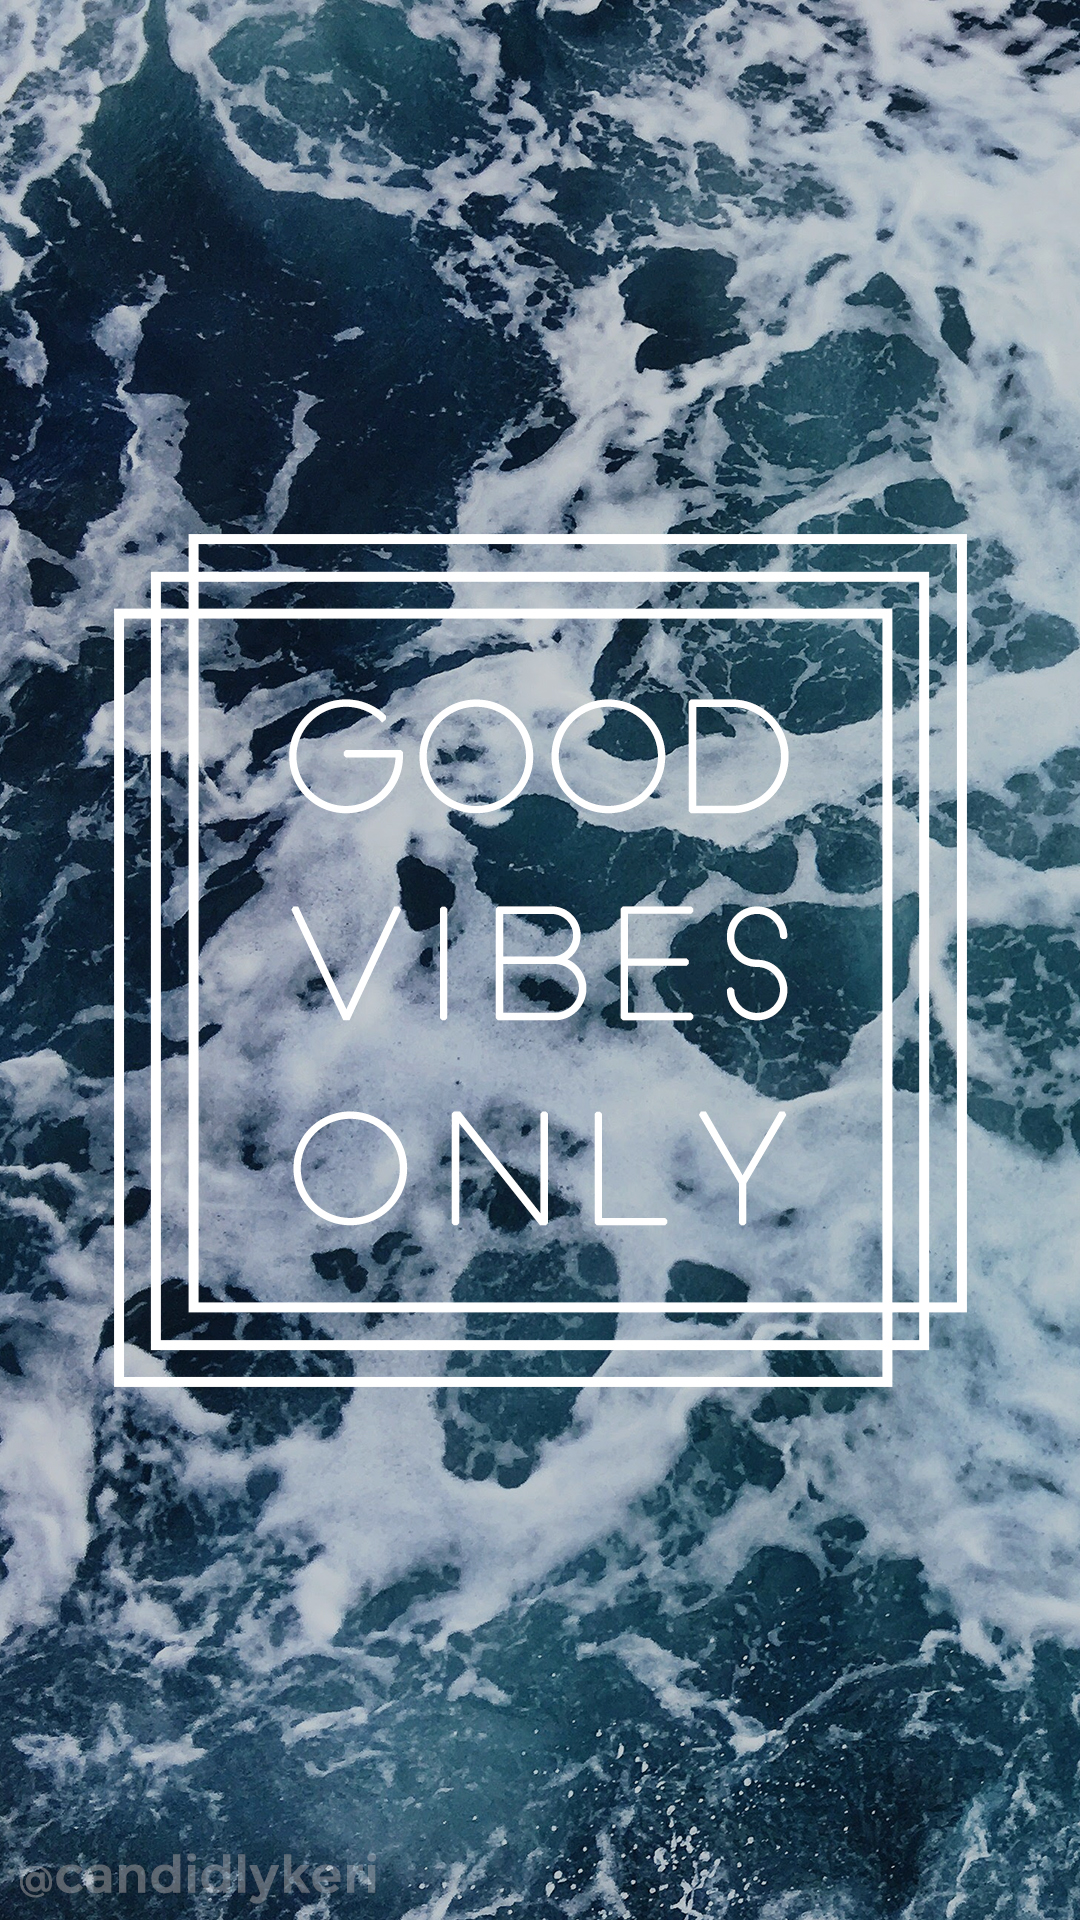 Good-Vibes-Only-ocean-waves-you-can-download-for-free-on-the-blog-For-any-device-mobile-wallpaper-wp3606287